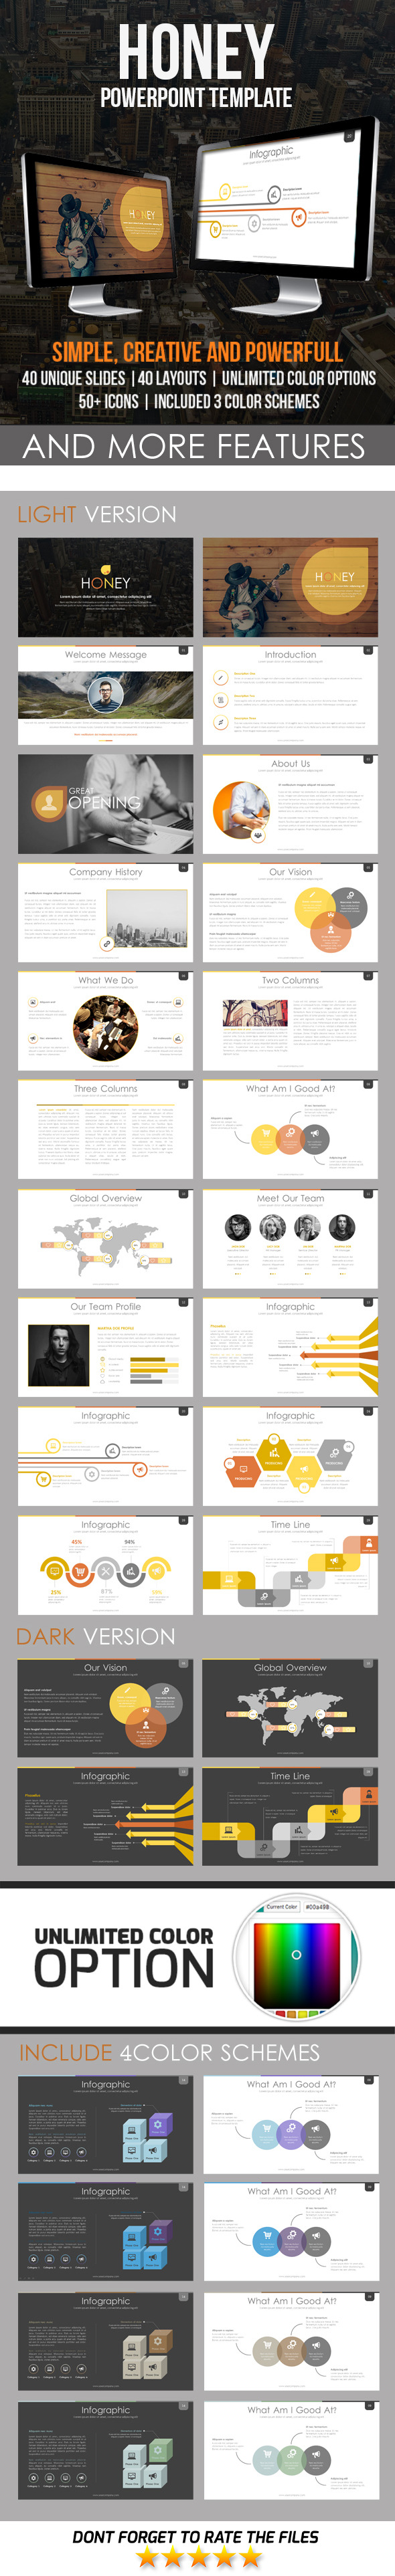 GraphicRiver Honey PowerPoint Template 11548292